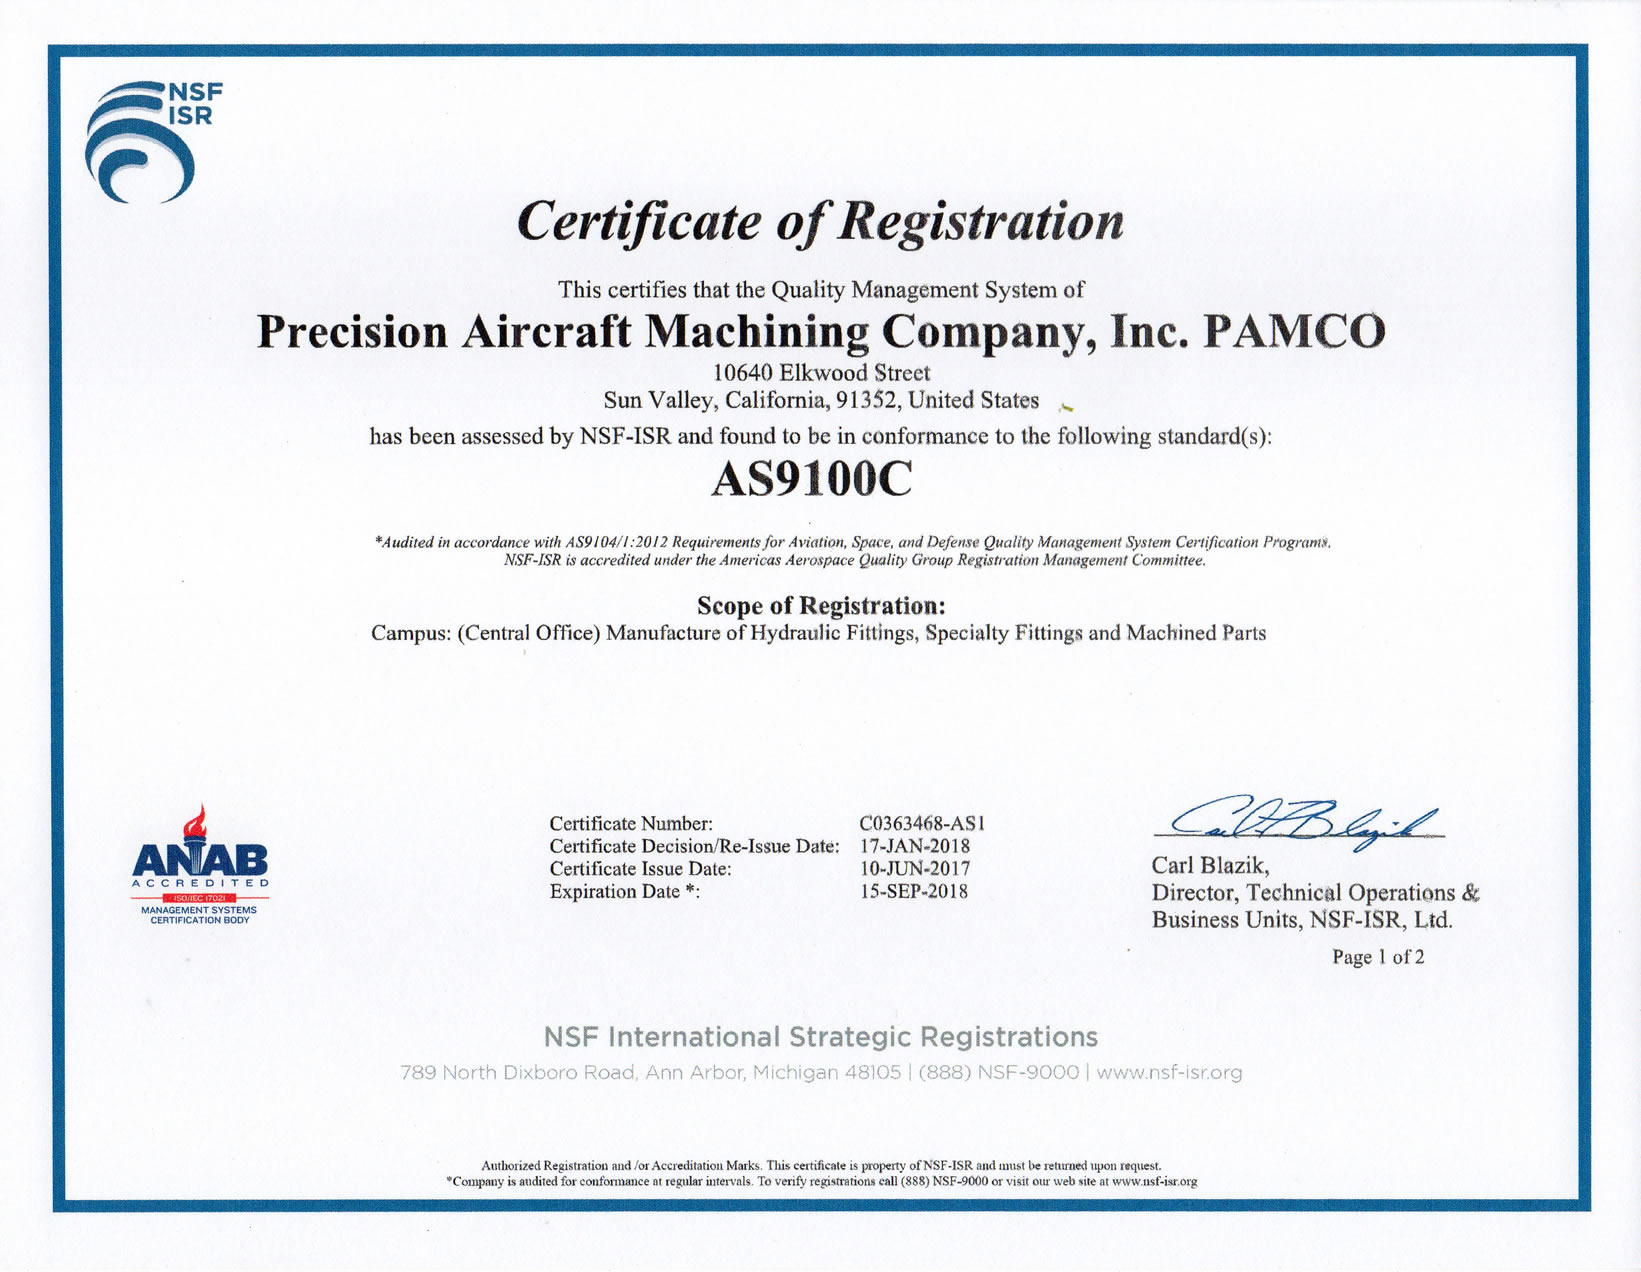 Pamco Receives Iso 90012008 Asen 9100 C Certification